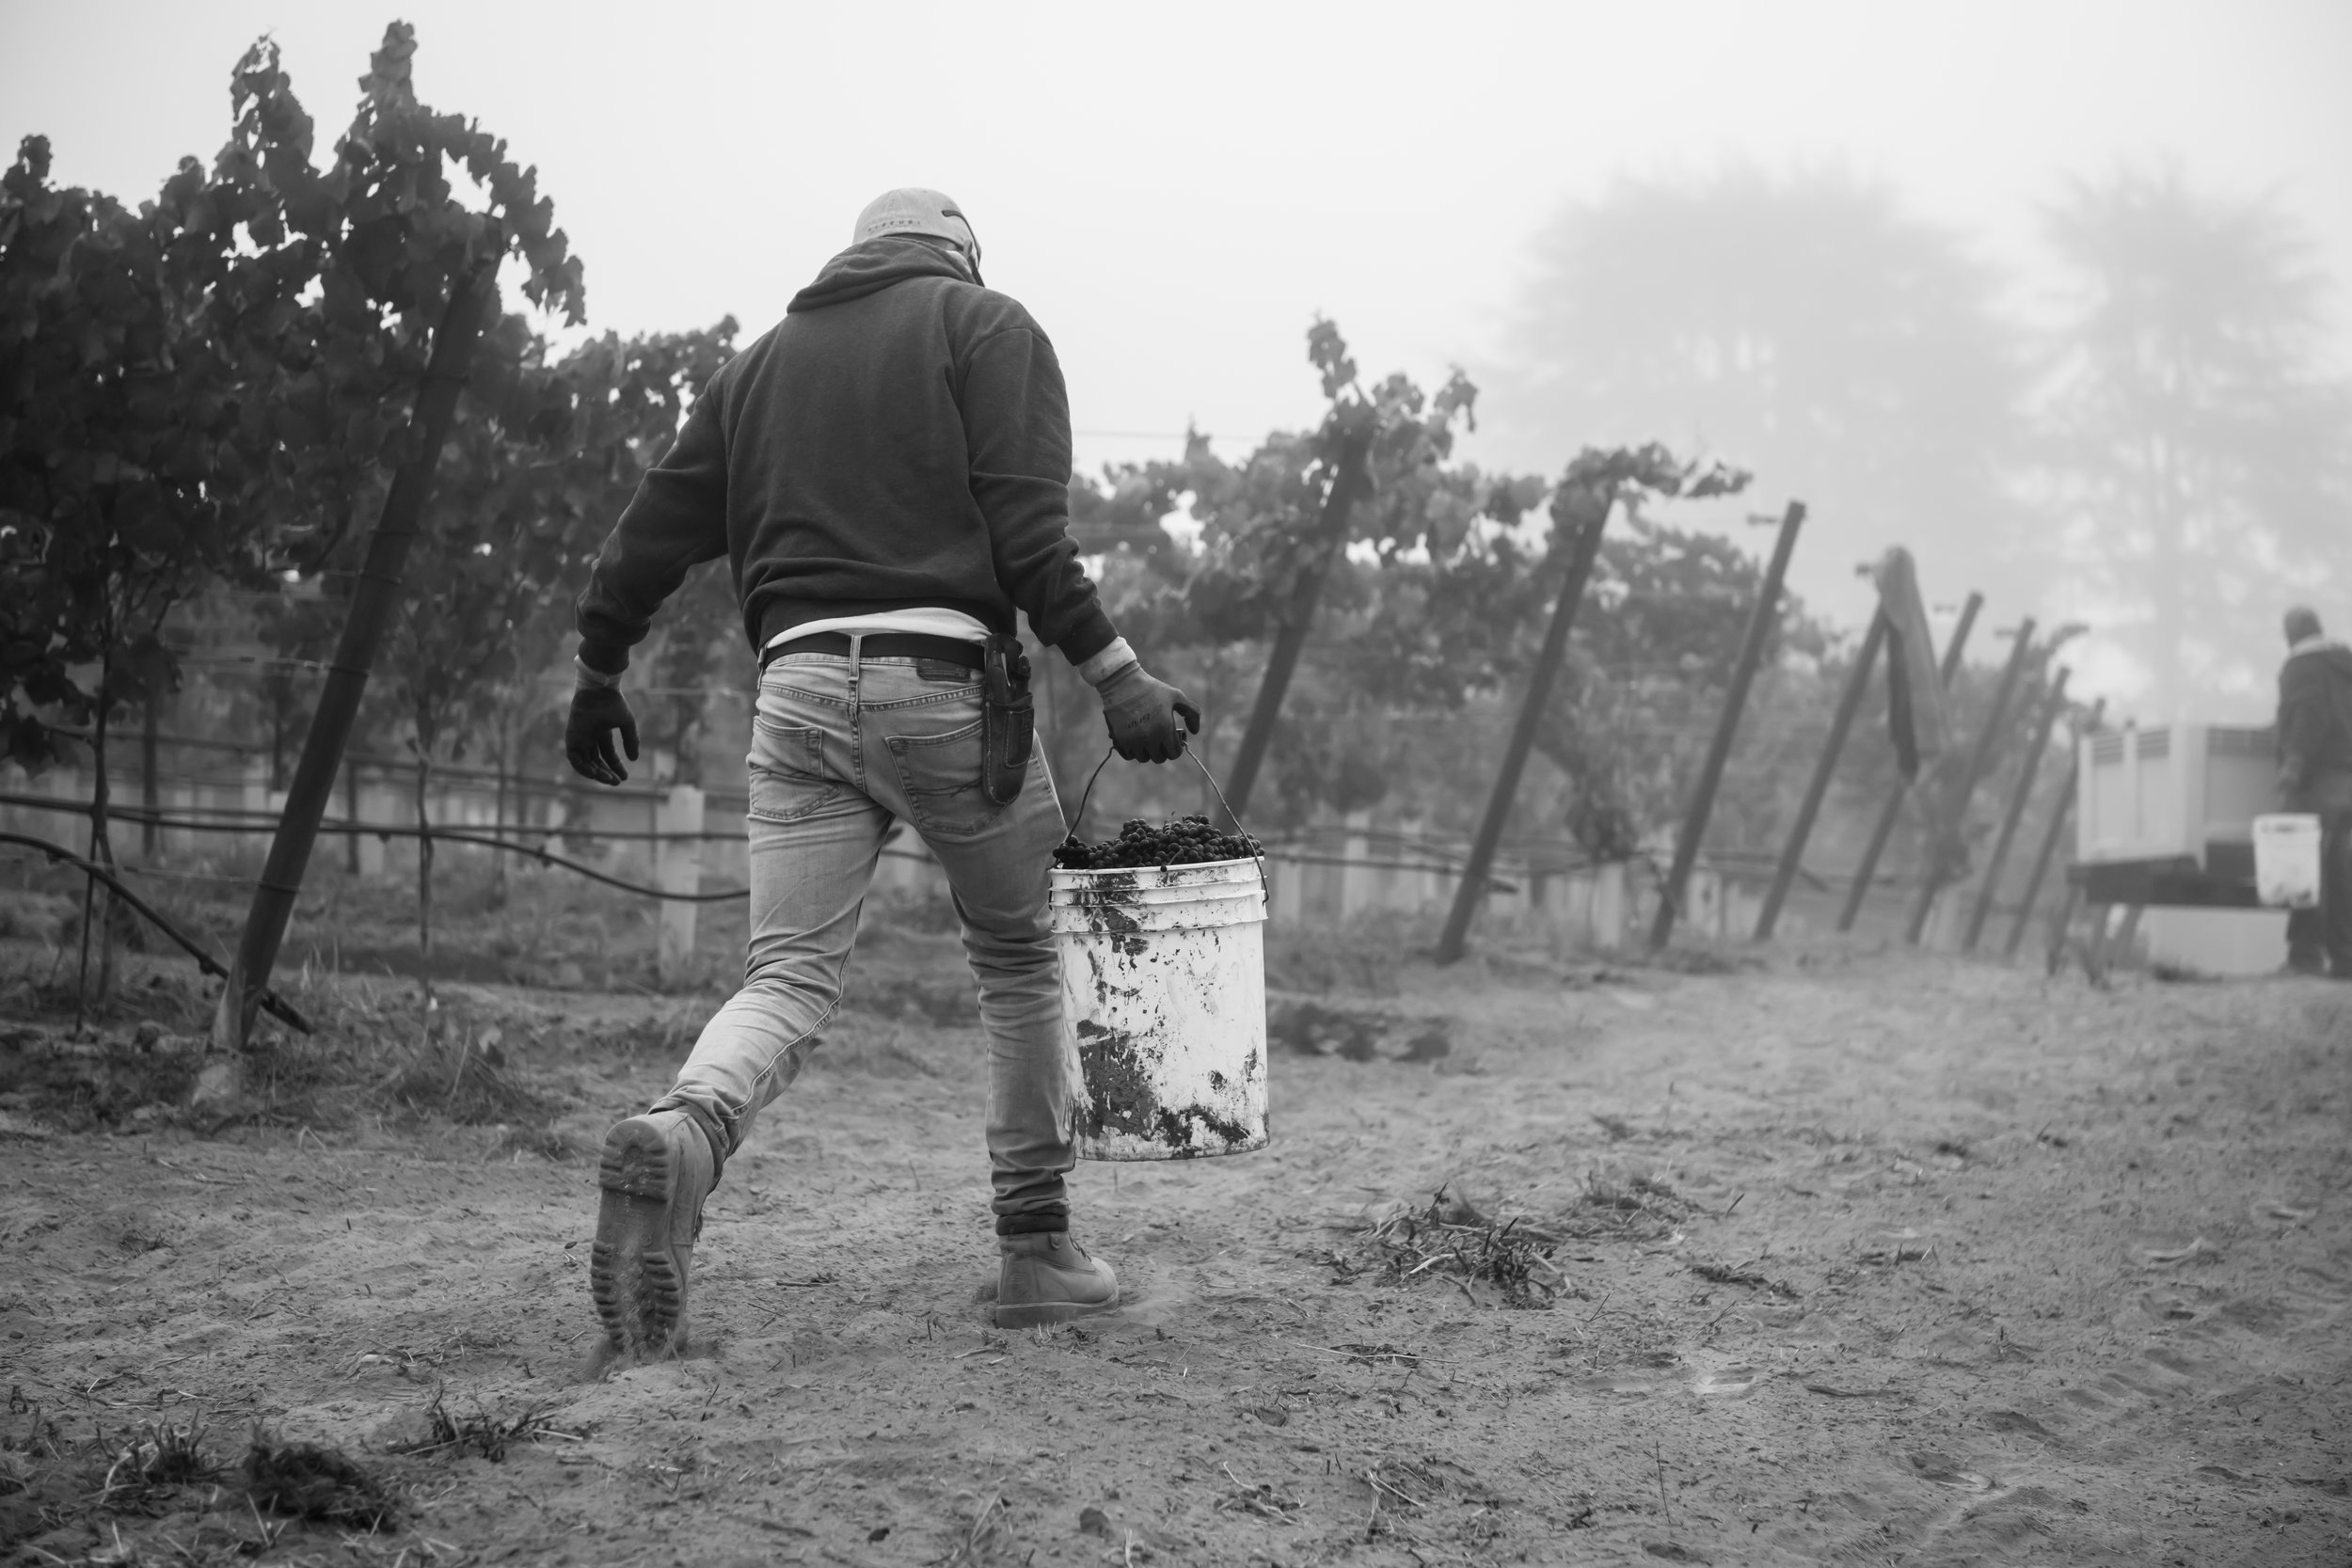 Black_and_white_shot_of_vineyard_worker.jpg